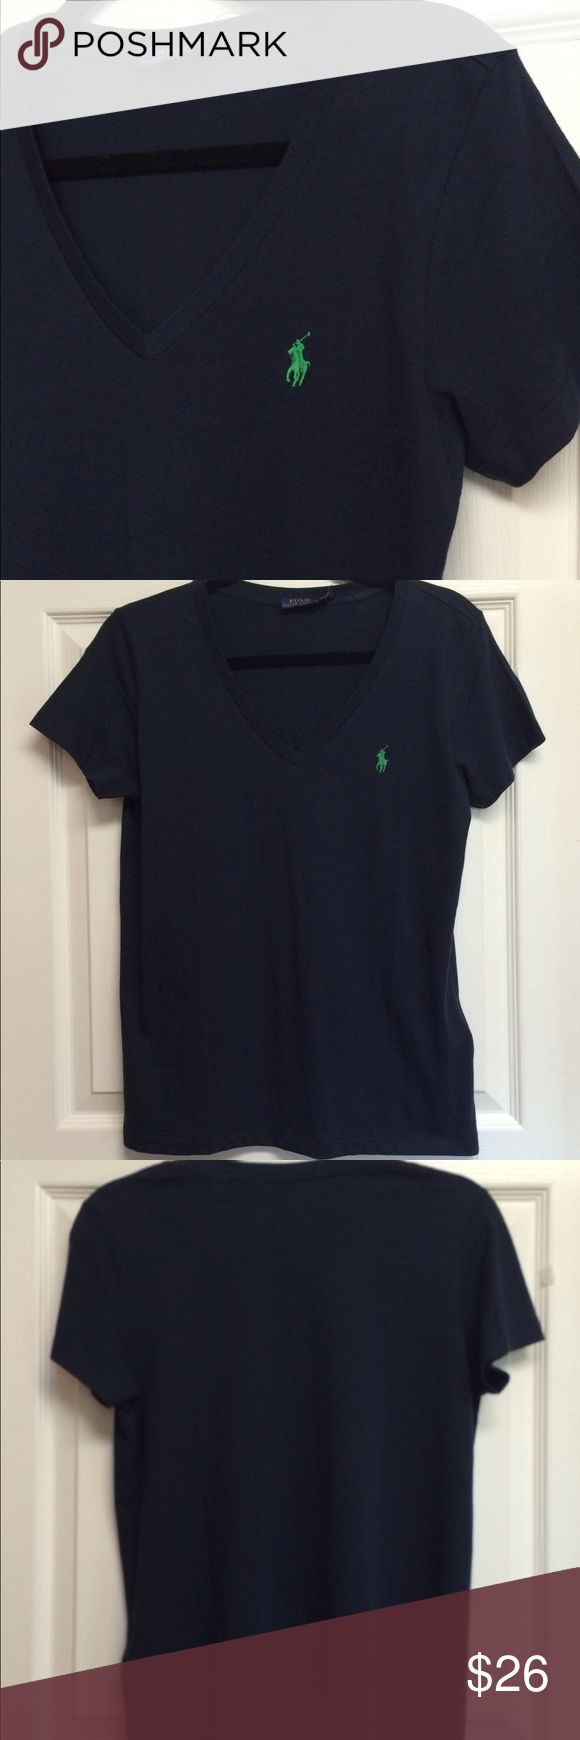 "SALE🎈Ralph Lauren navy tee shirt NWT V Neck med NWT great looking navy blue short sleeve tee shirt. This measures 19 1/2"" across. Plenty of pictures provided. Thanks for visiting gigishanger 😊 Bundle for a greater discount. Polo by Ralph Lauren Tops Tees - Short Sleeve"